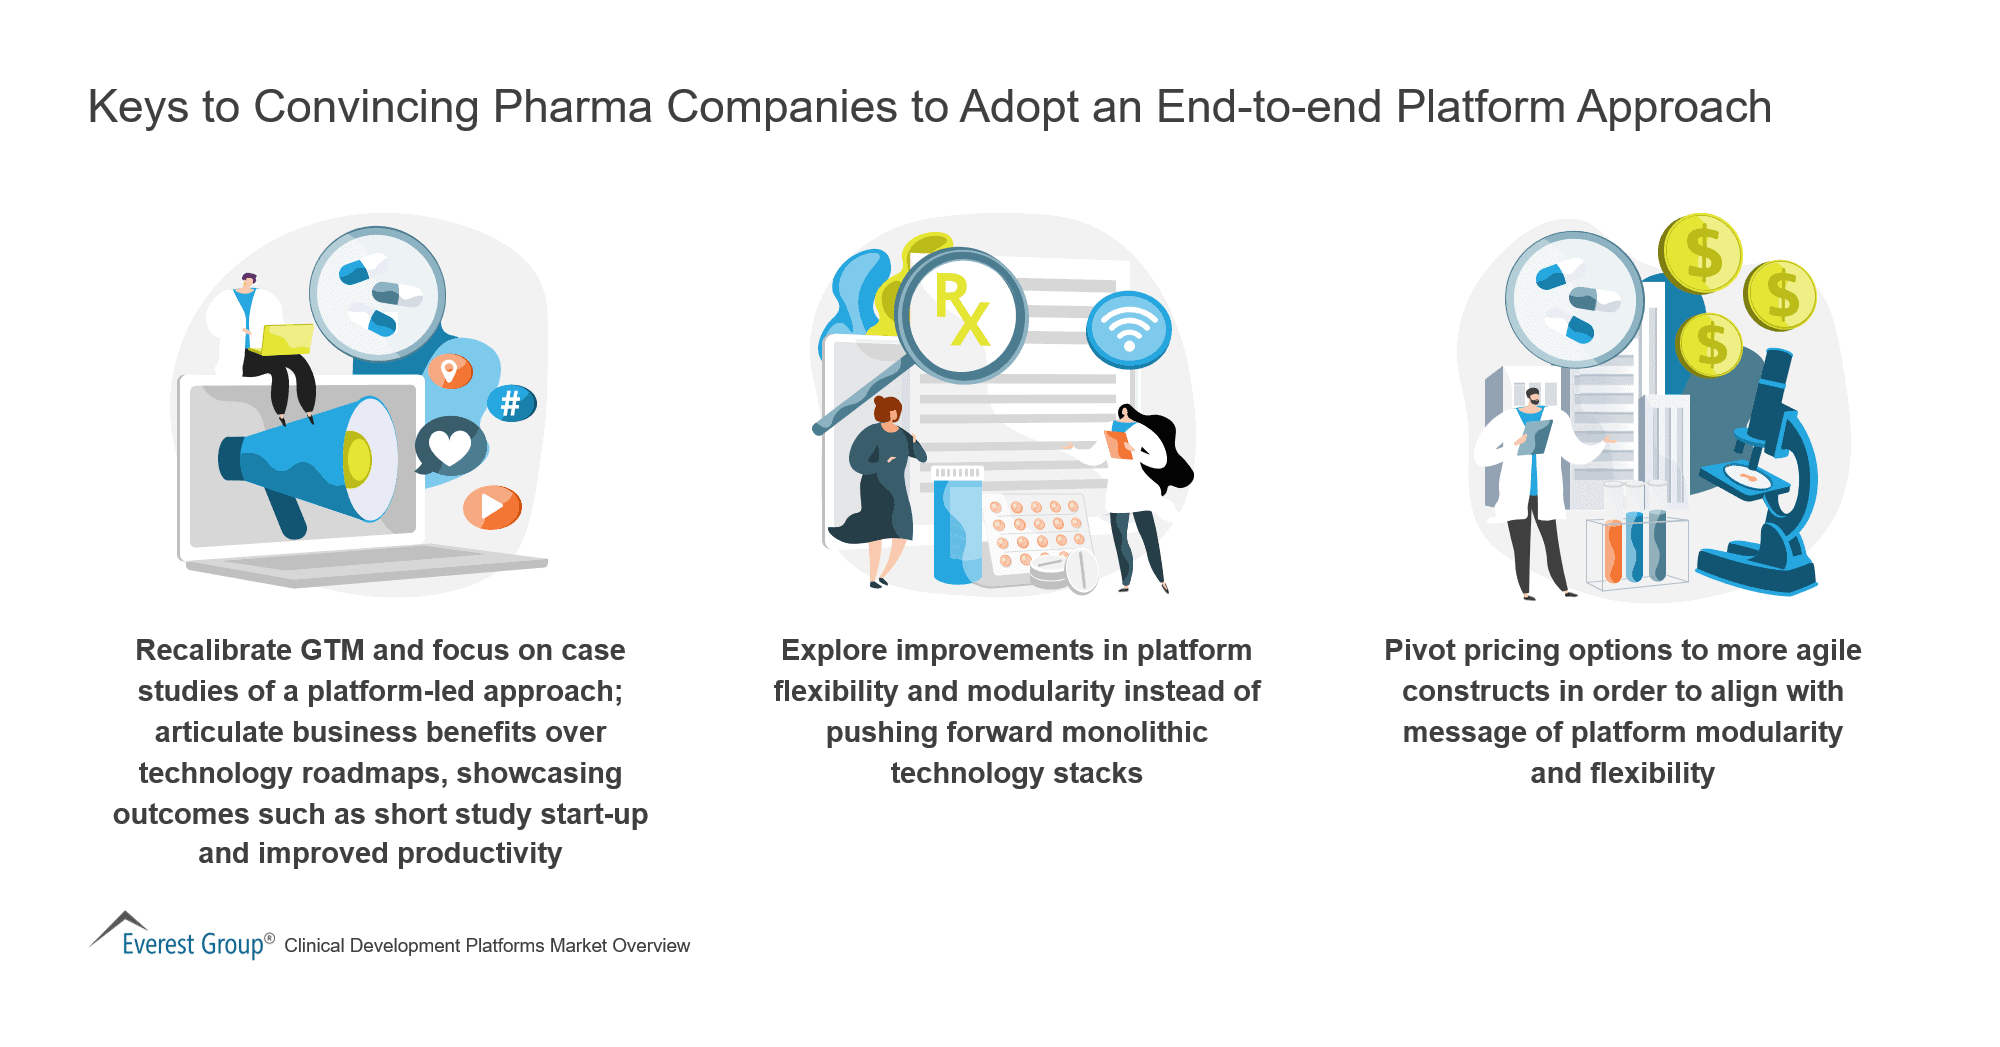 Keys to Convincing Pharma Companies to Adopt an End-to-end Platform Approach